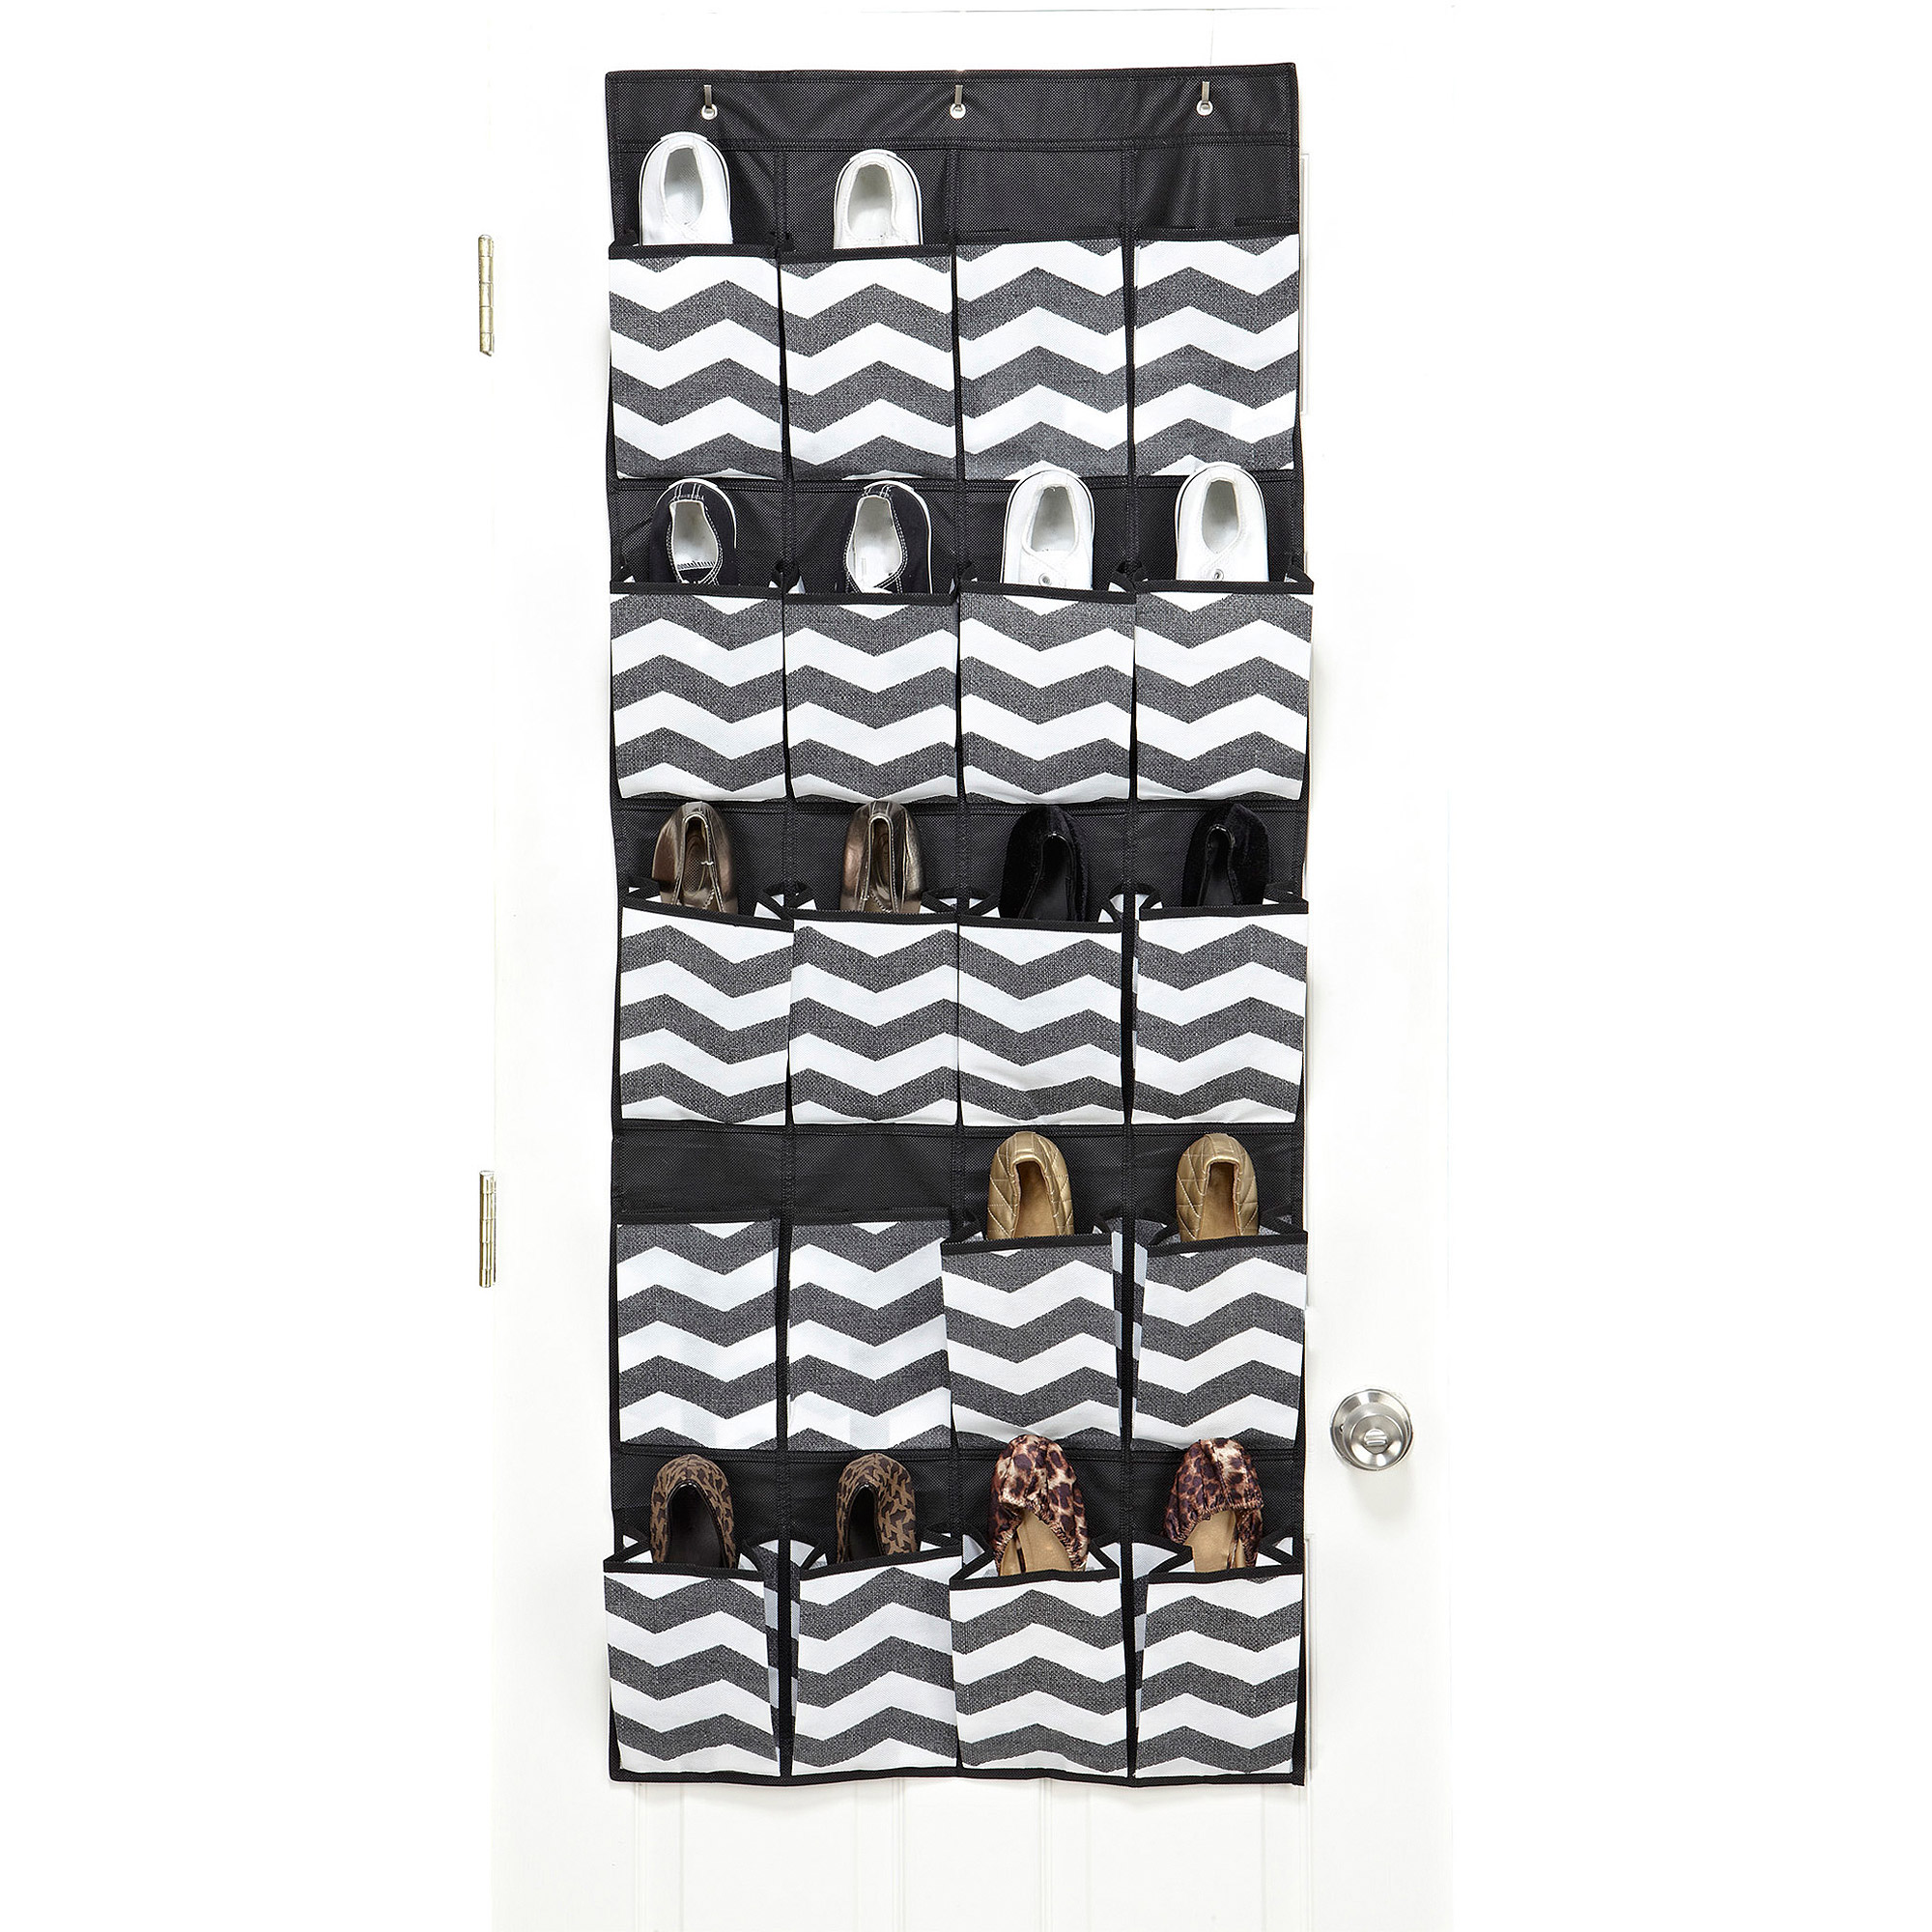 ClosetCandie 20-Pocket Over-The-Door Shoe Organizer, Chevron Faux Jute